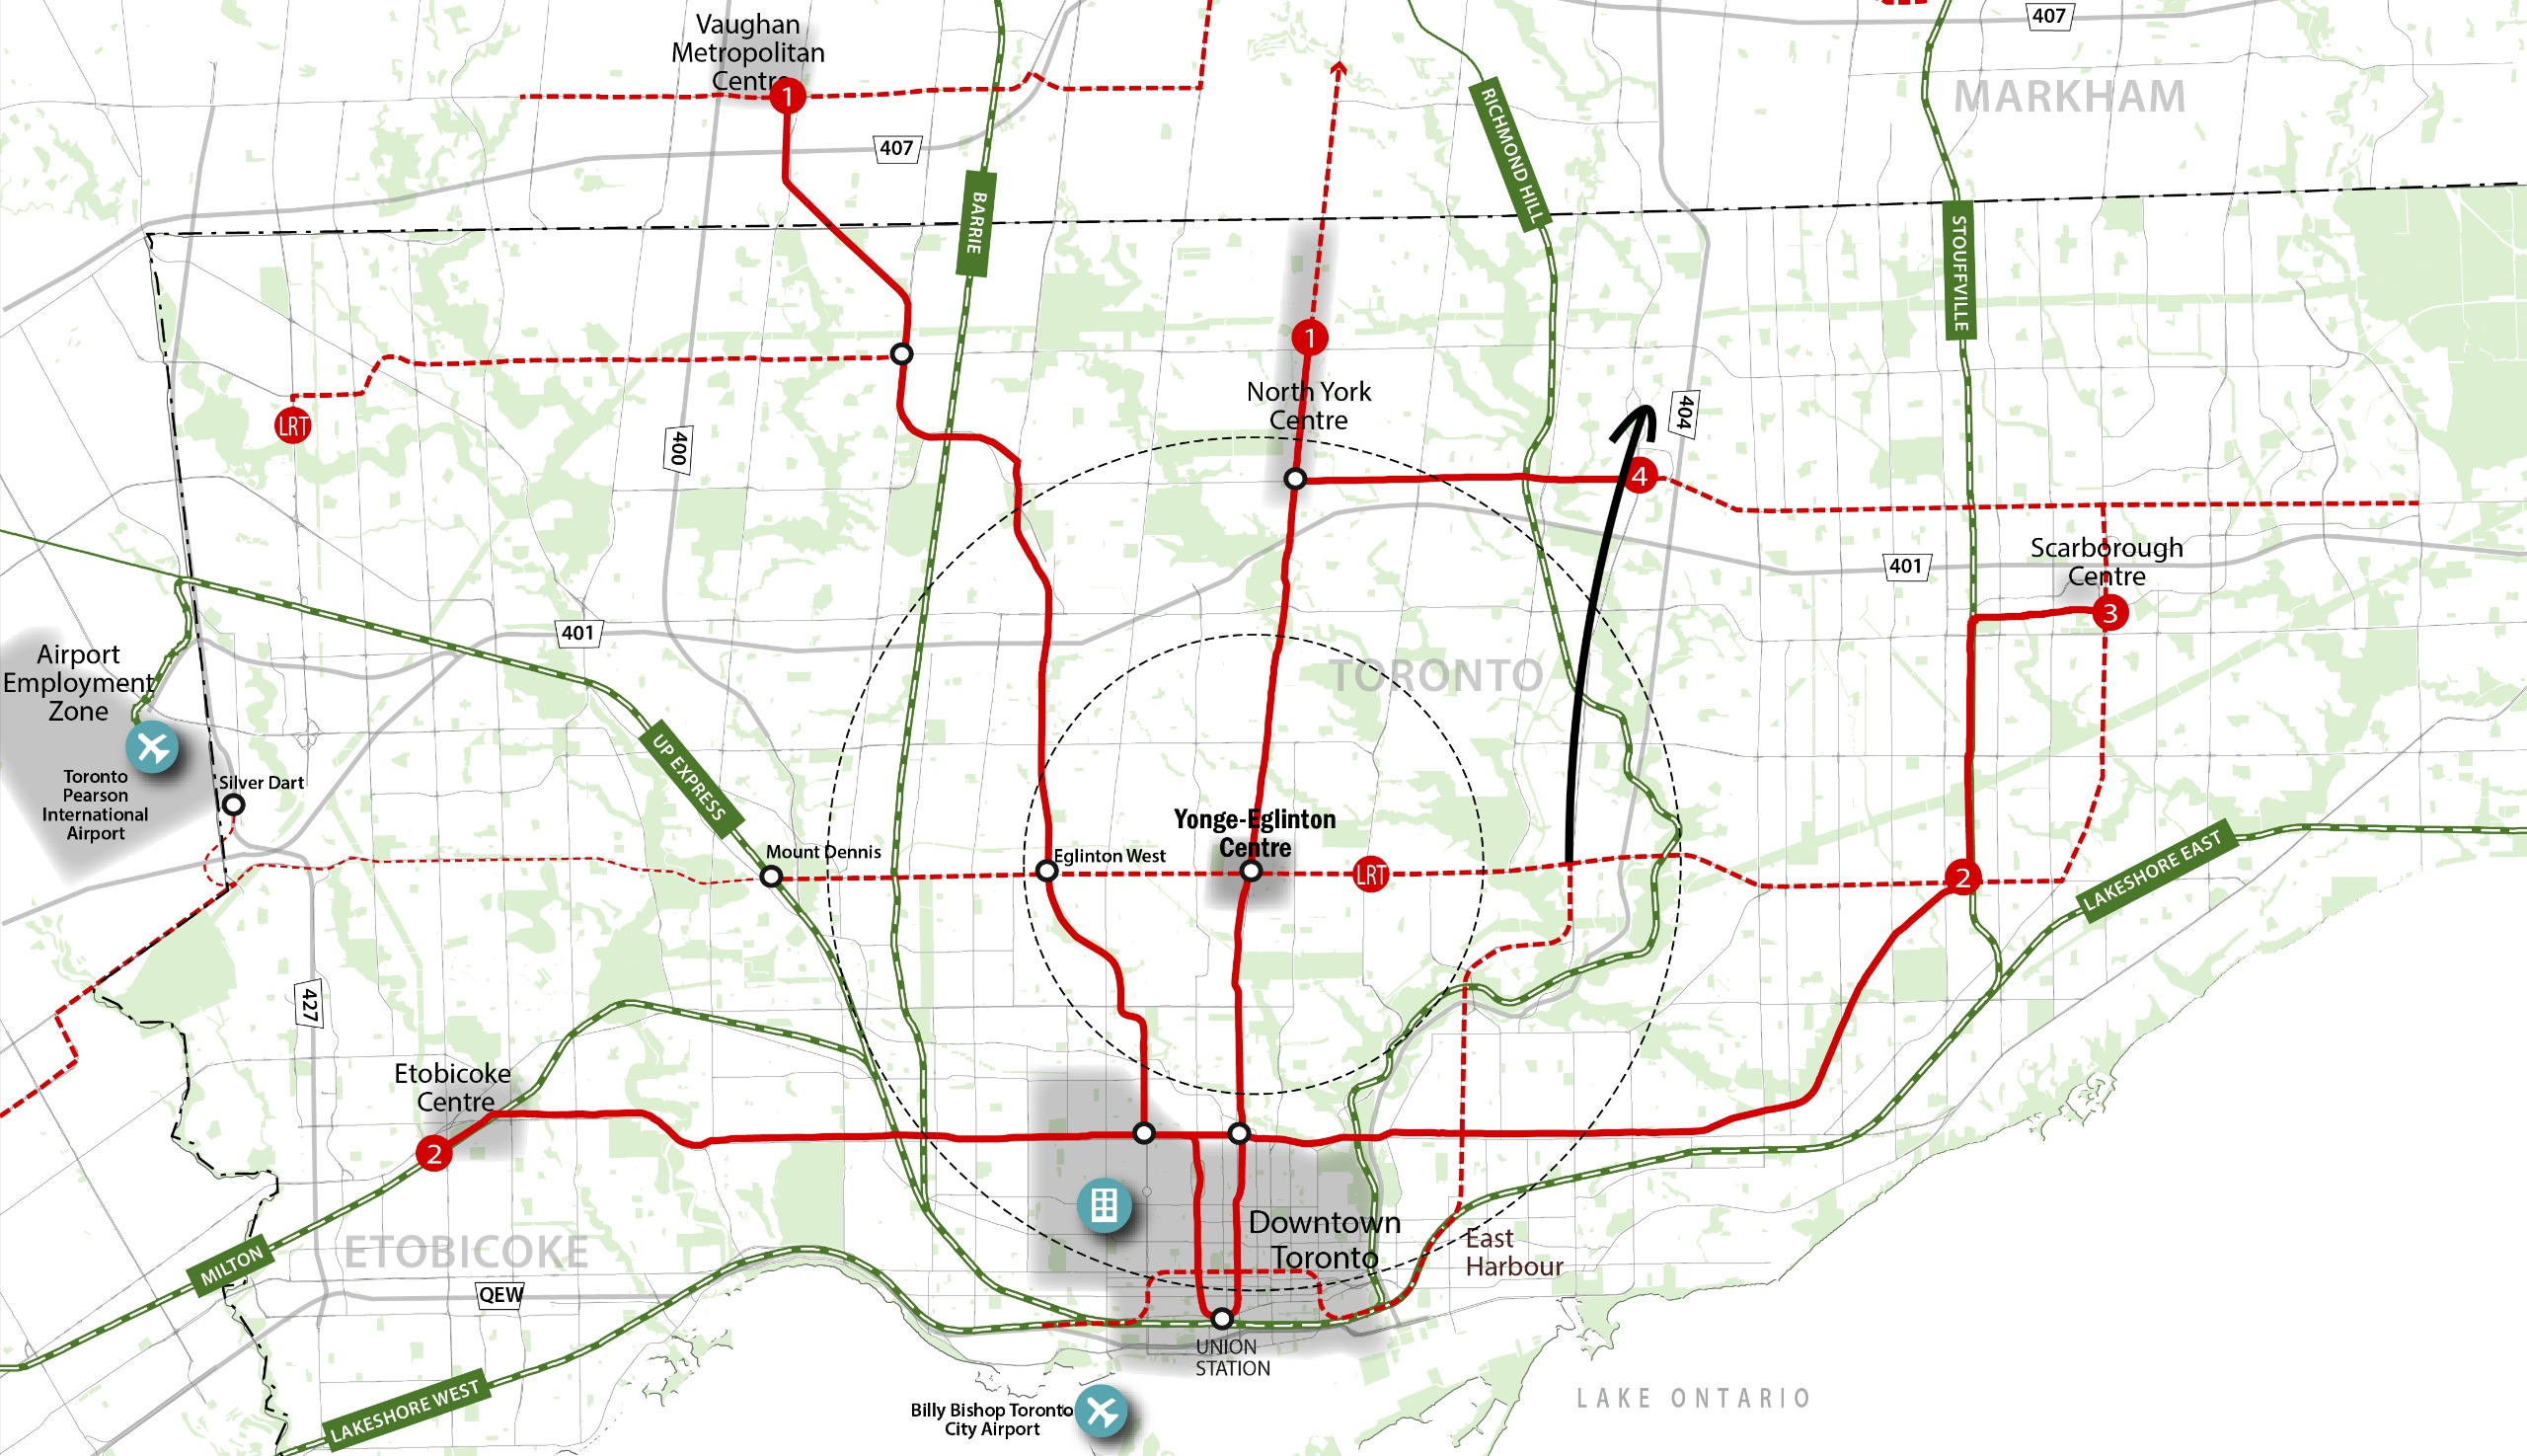 Map of Toronto showing location of Yonge and Eglinton